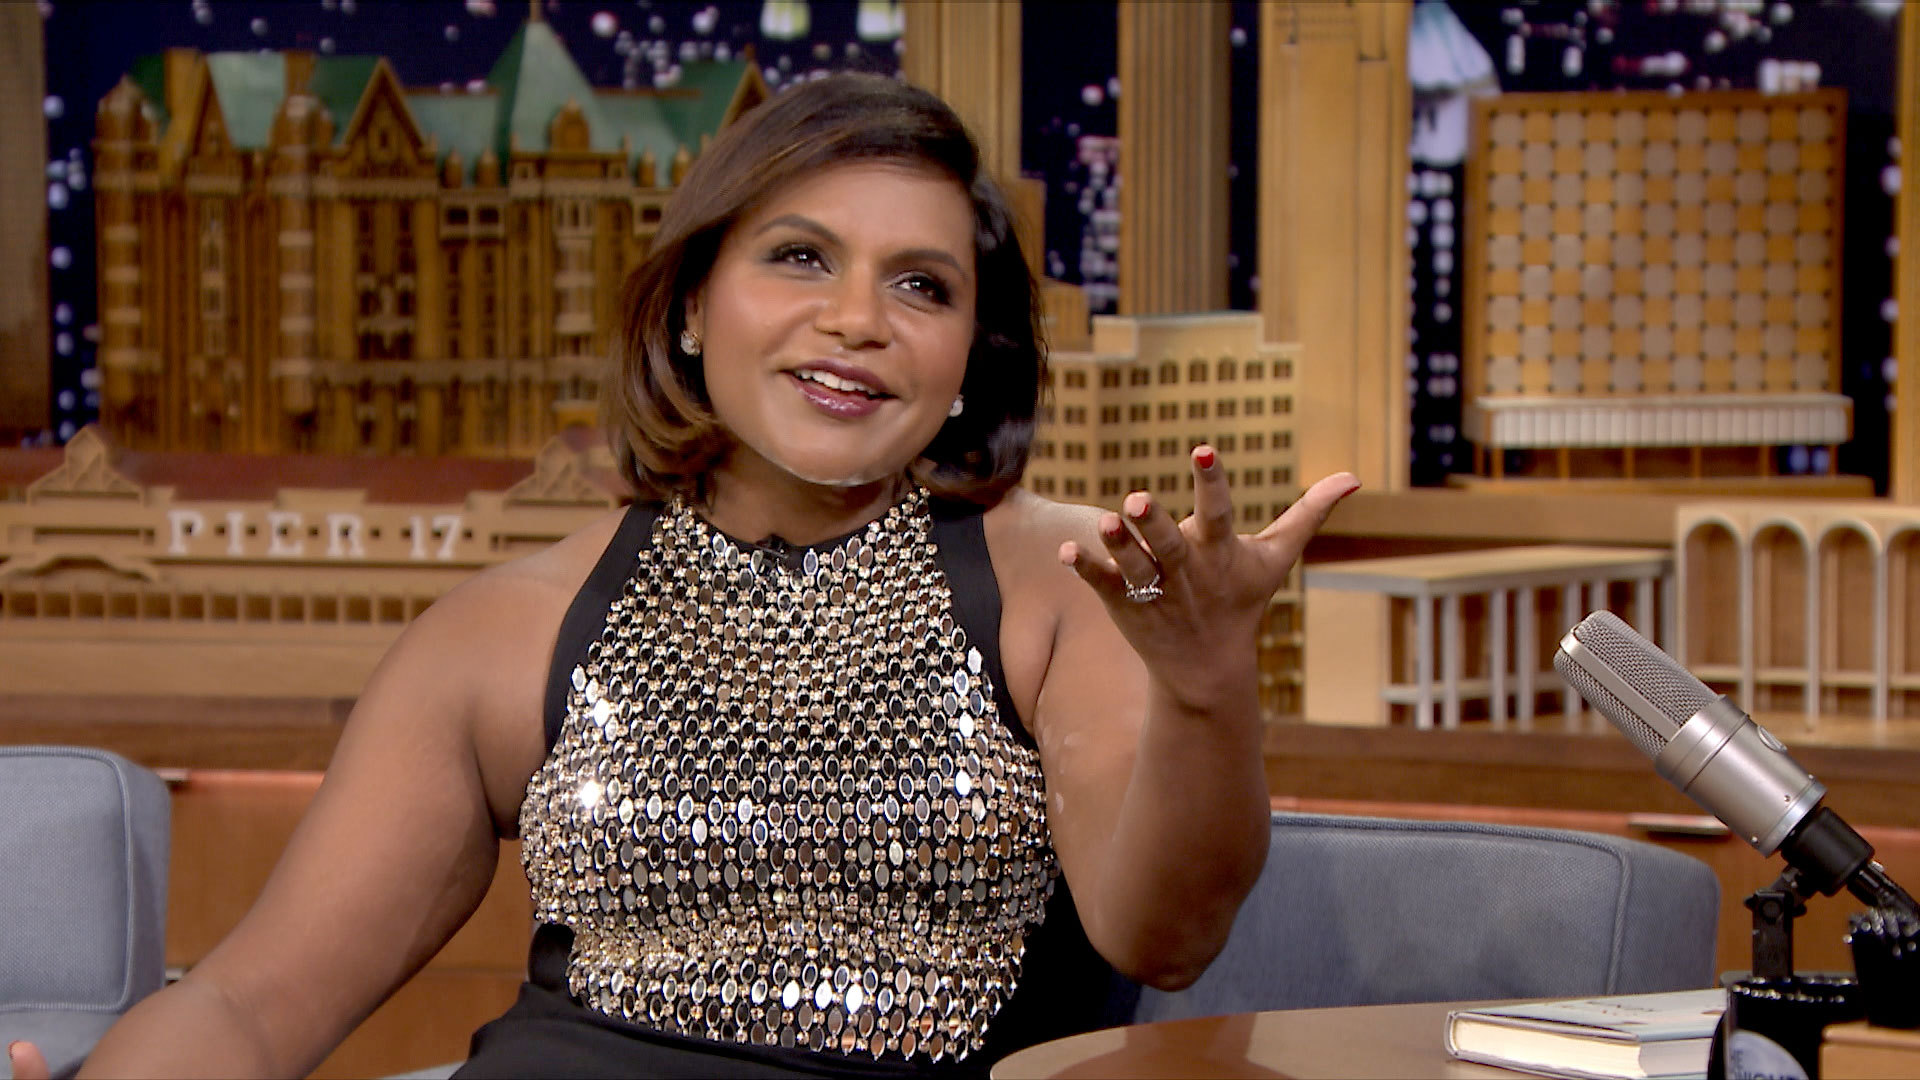 Mindy Kaling Wallpapers Images Photos Pictures Backgrounds 1920x1080